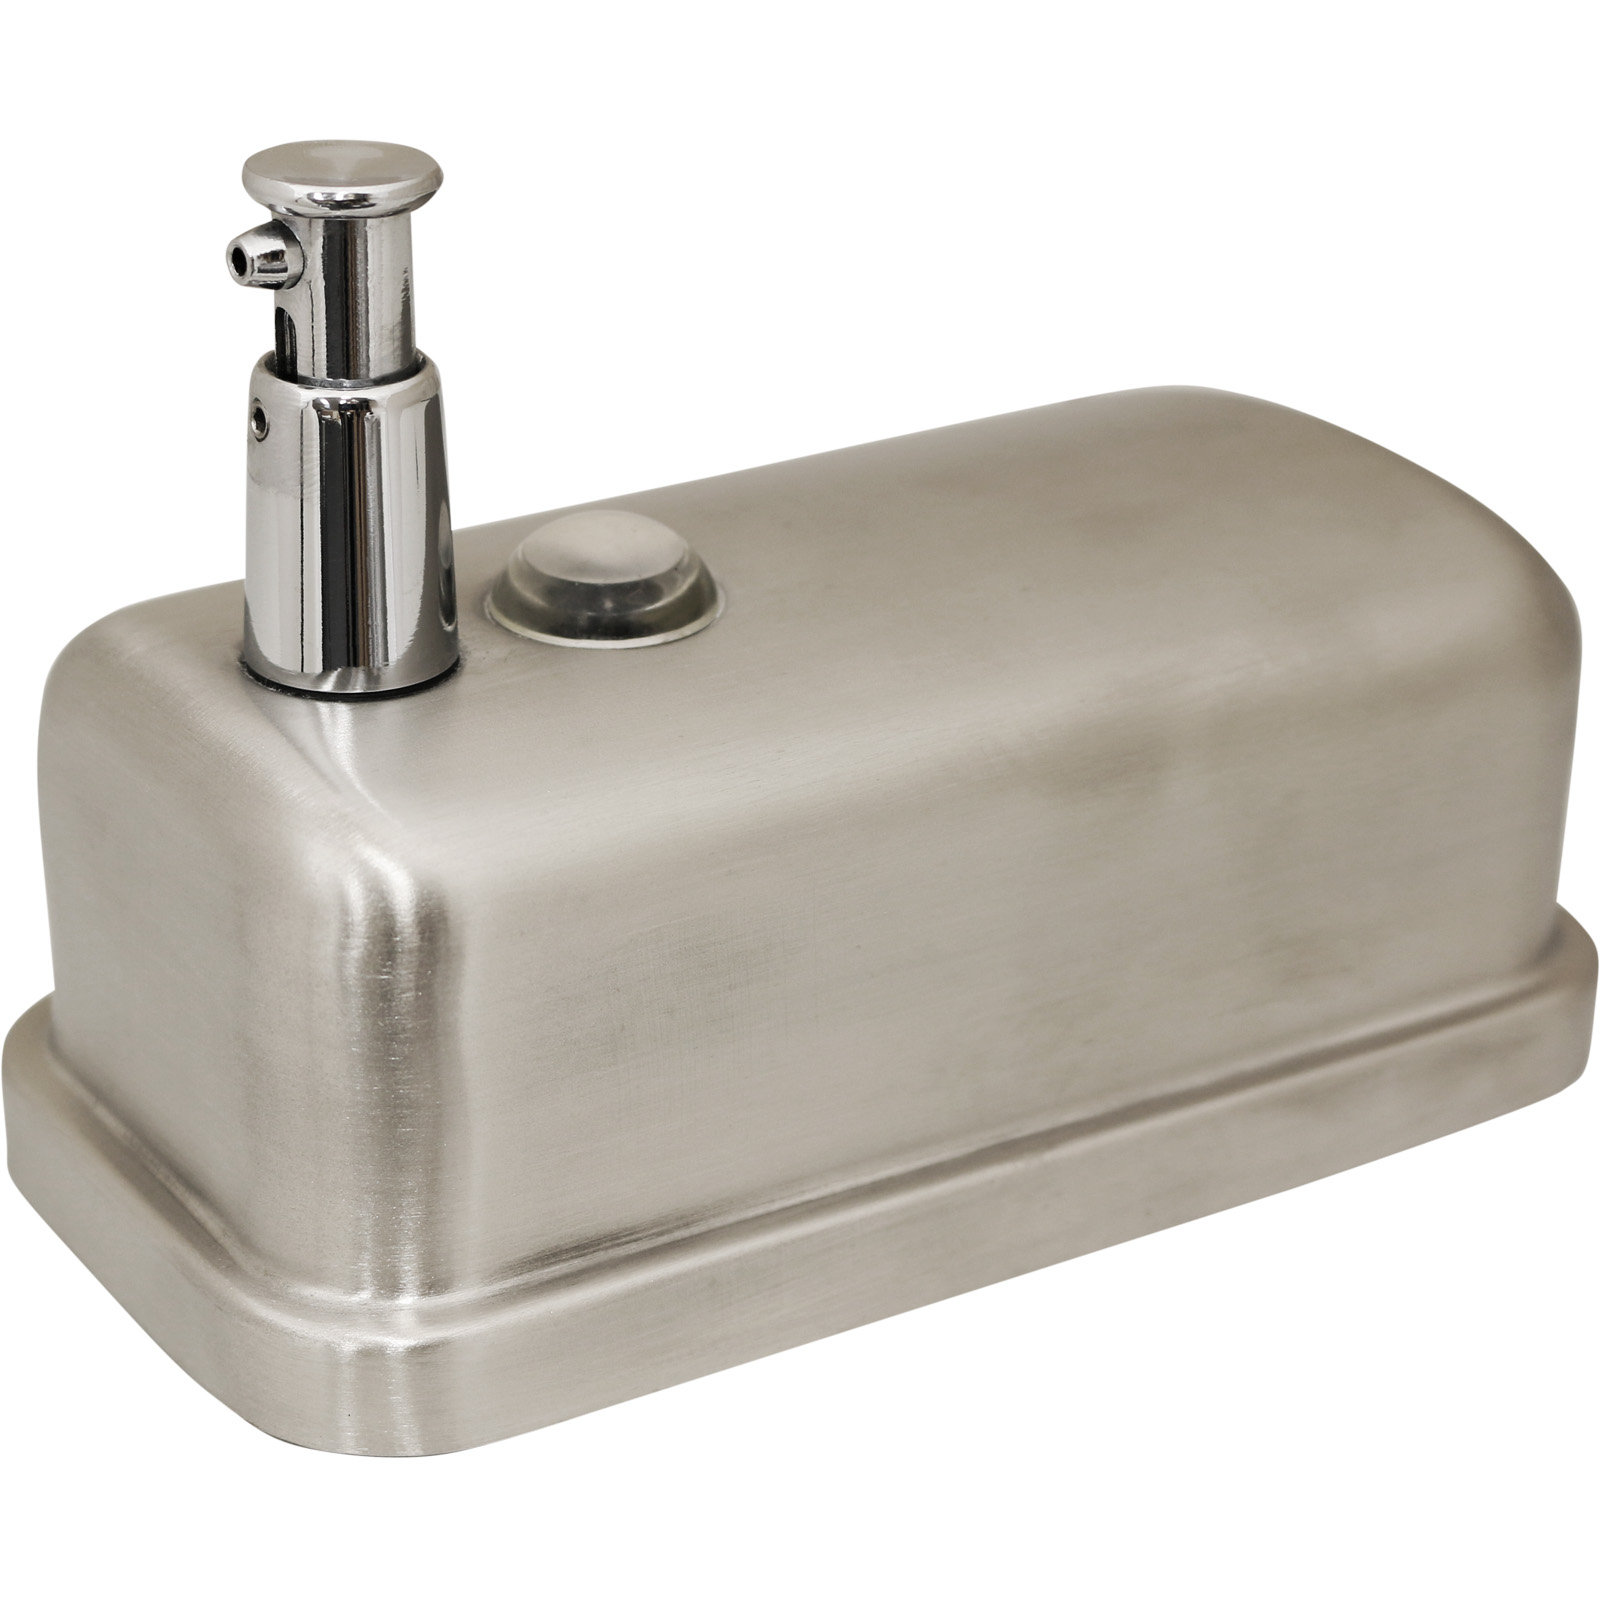 Metal Soap Dispenser Pump Stainless Steel Soap Shampoo Dispenser Pump Action Wall